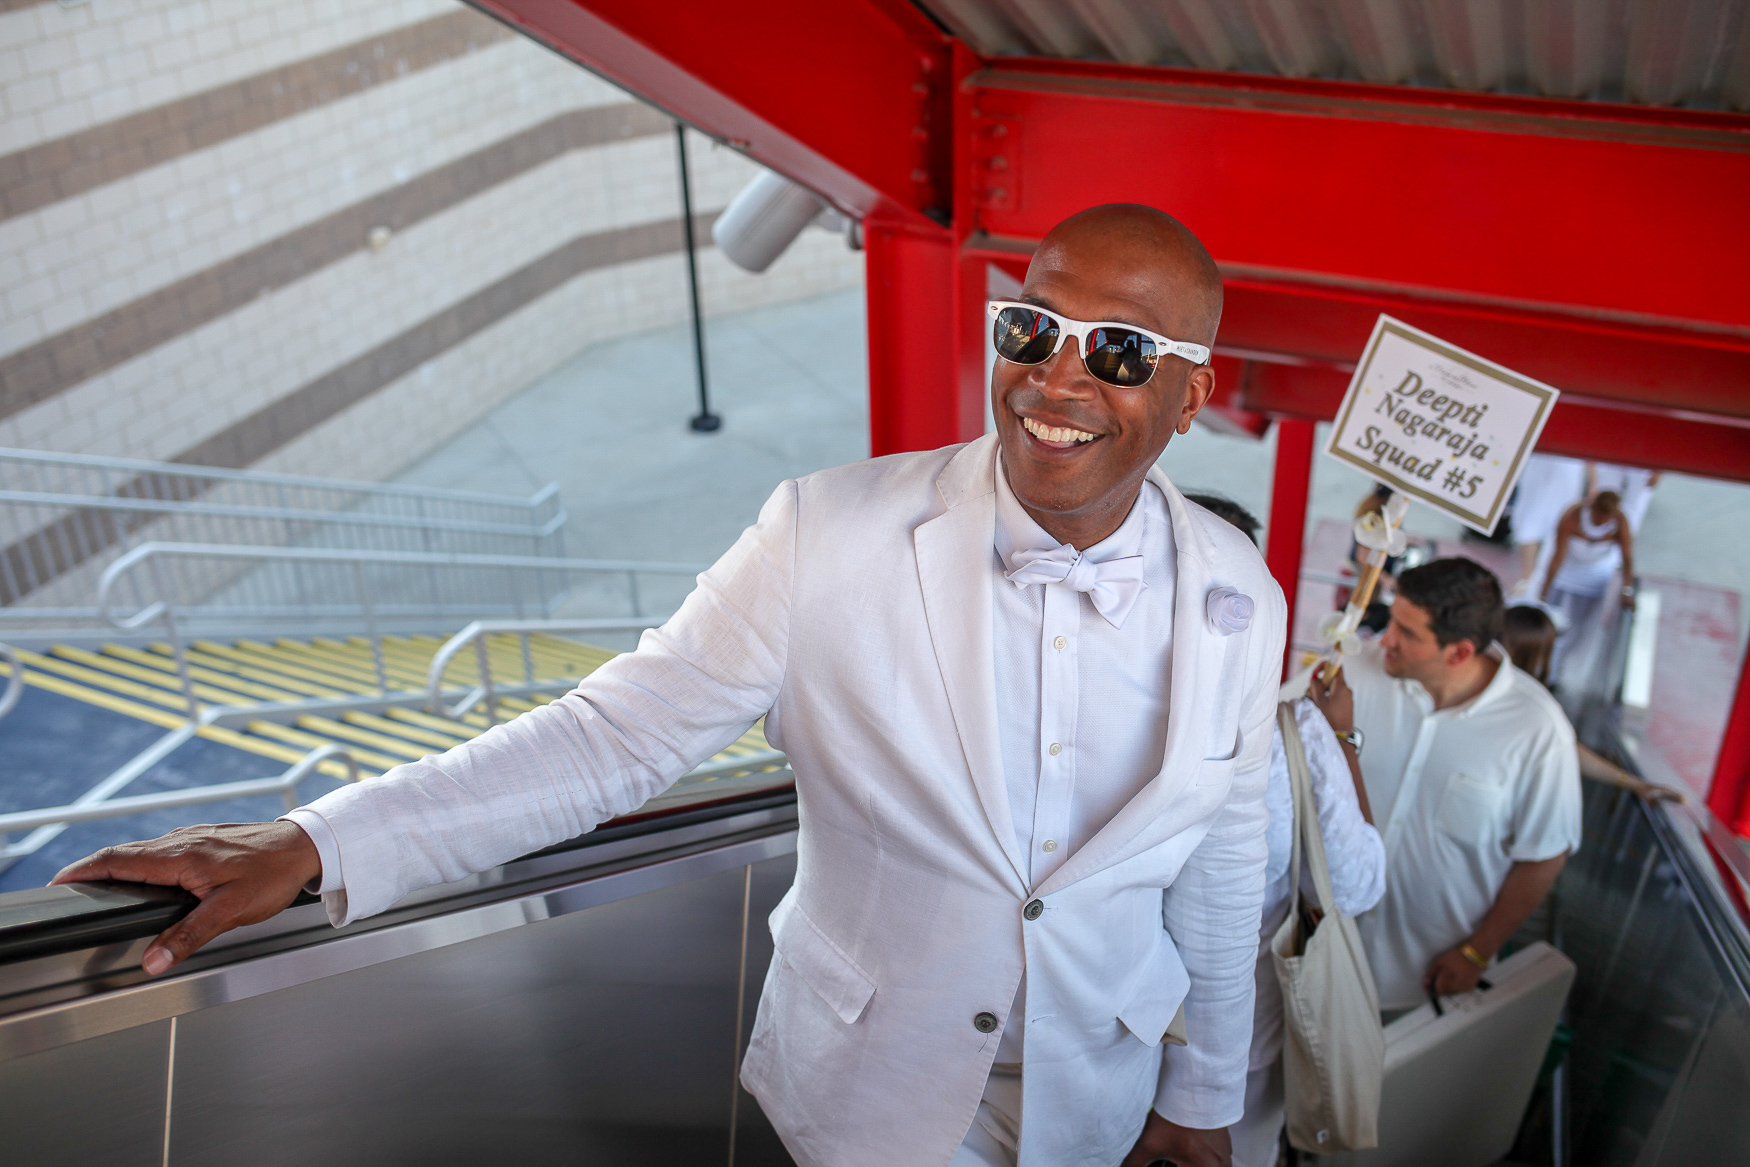 This August was hot and damp, but Washingtonians still dressed their best. Here are some of our favorite looks from this month, like Barnette Holston's all-white ensemble at Diner en Blanc. (Amanda Andrade-Rhoades/DC Refined)